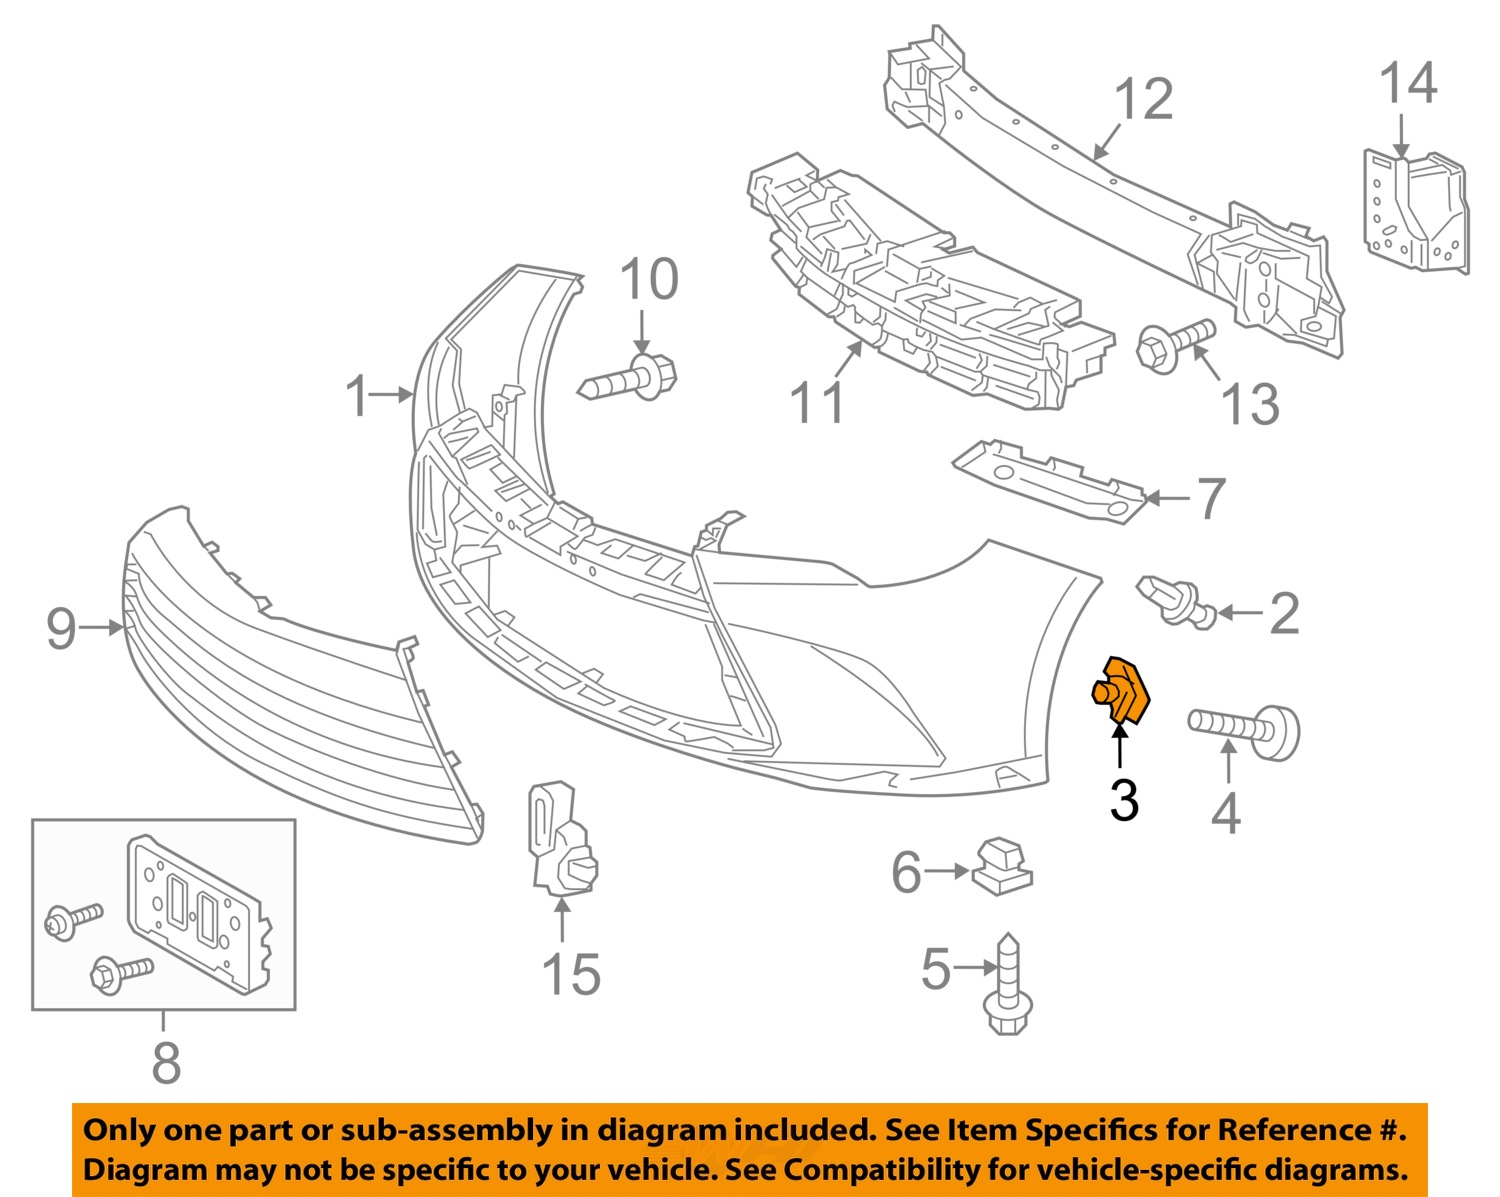 Toyota OEM Front Bumper Cover Retainer Clip 53879-06100 Factory One Only    eBayeBay